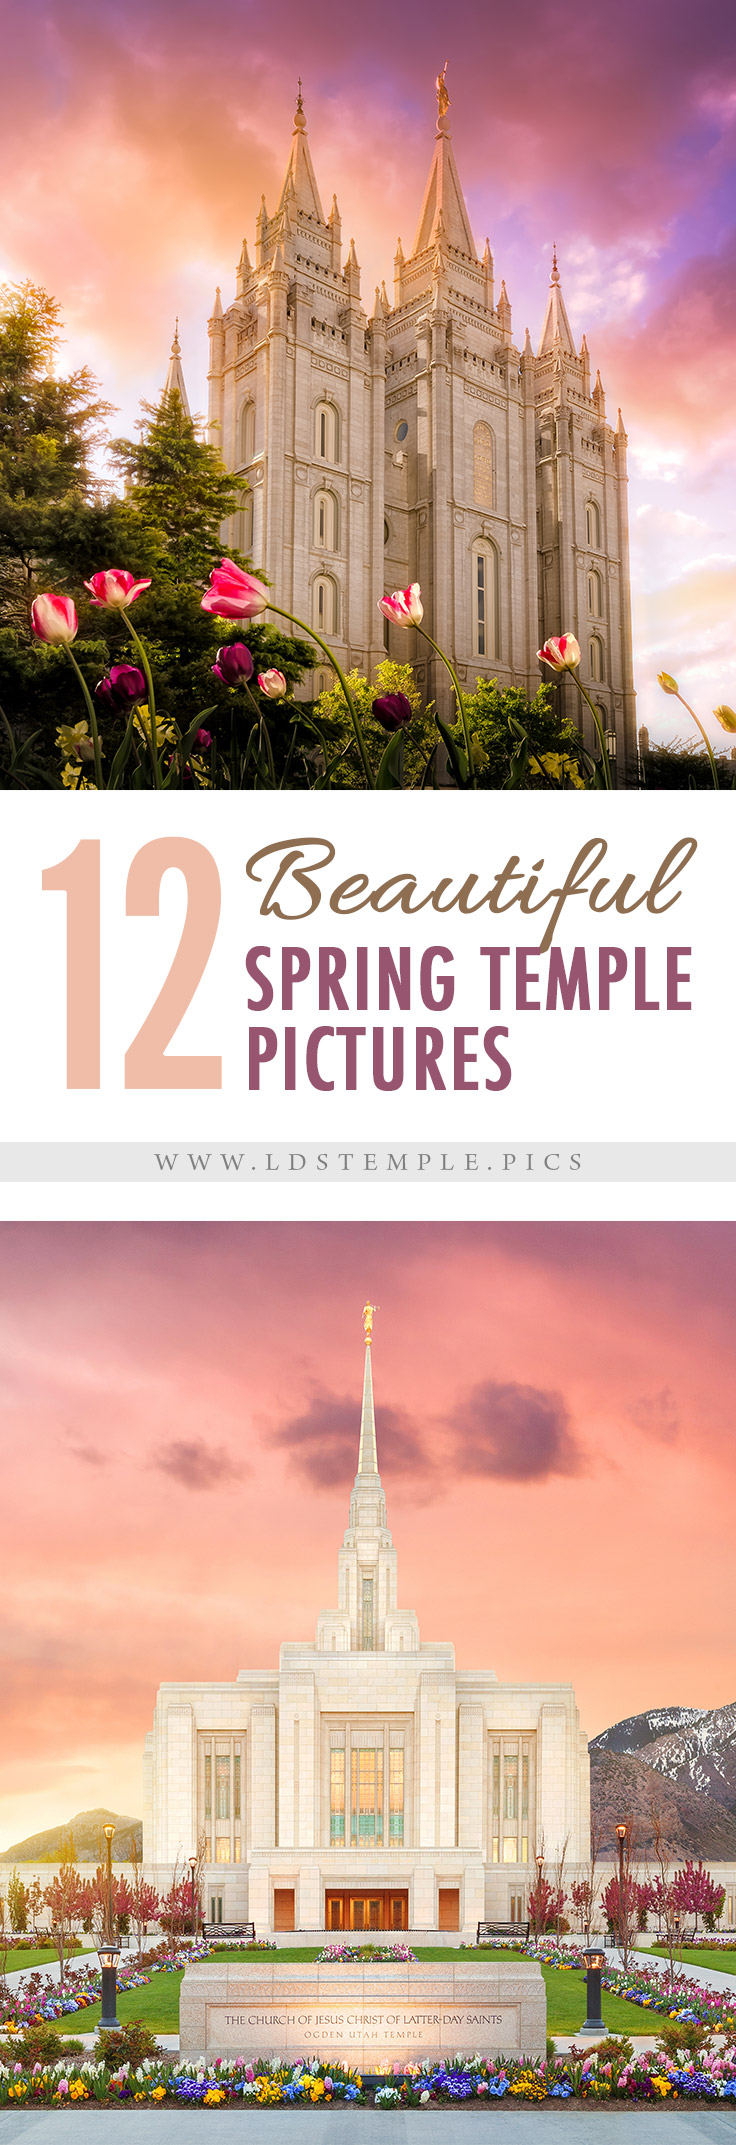 12 Stunning Spring Temple Pictures Lds Temple Pictures